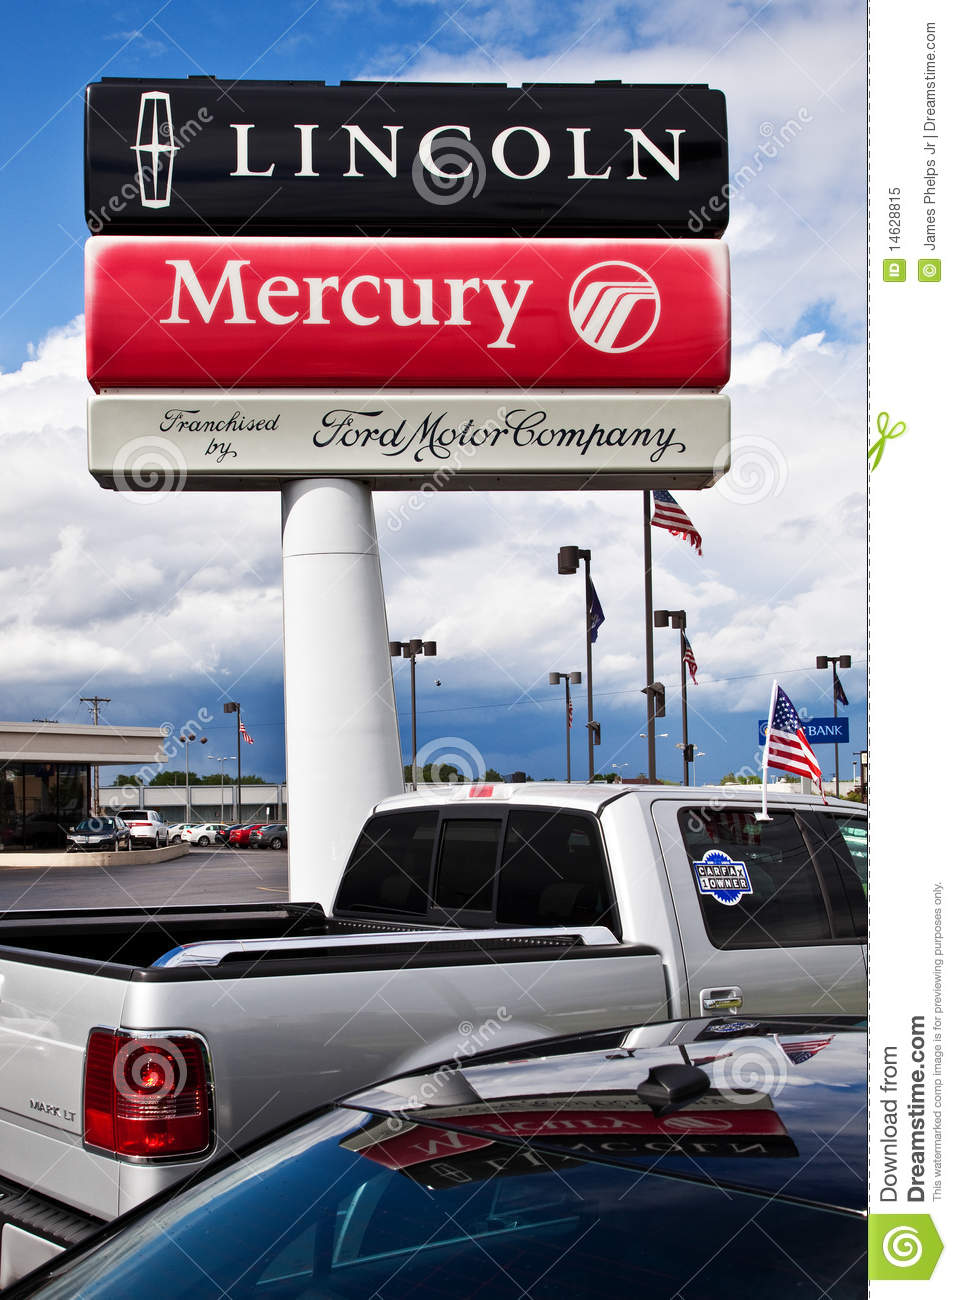 Lincoln Motor Company >> Ford Lincoln Mercury Dealership Sign Editorial Image - Image of lincoln, brand: 14628815